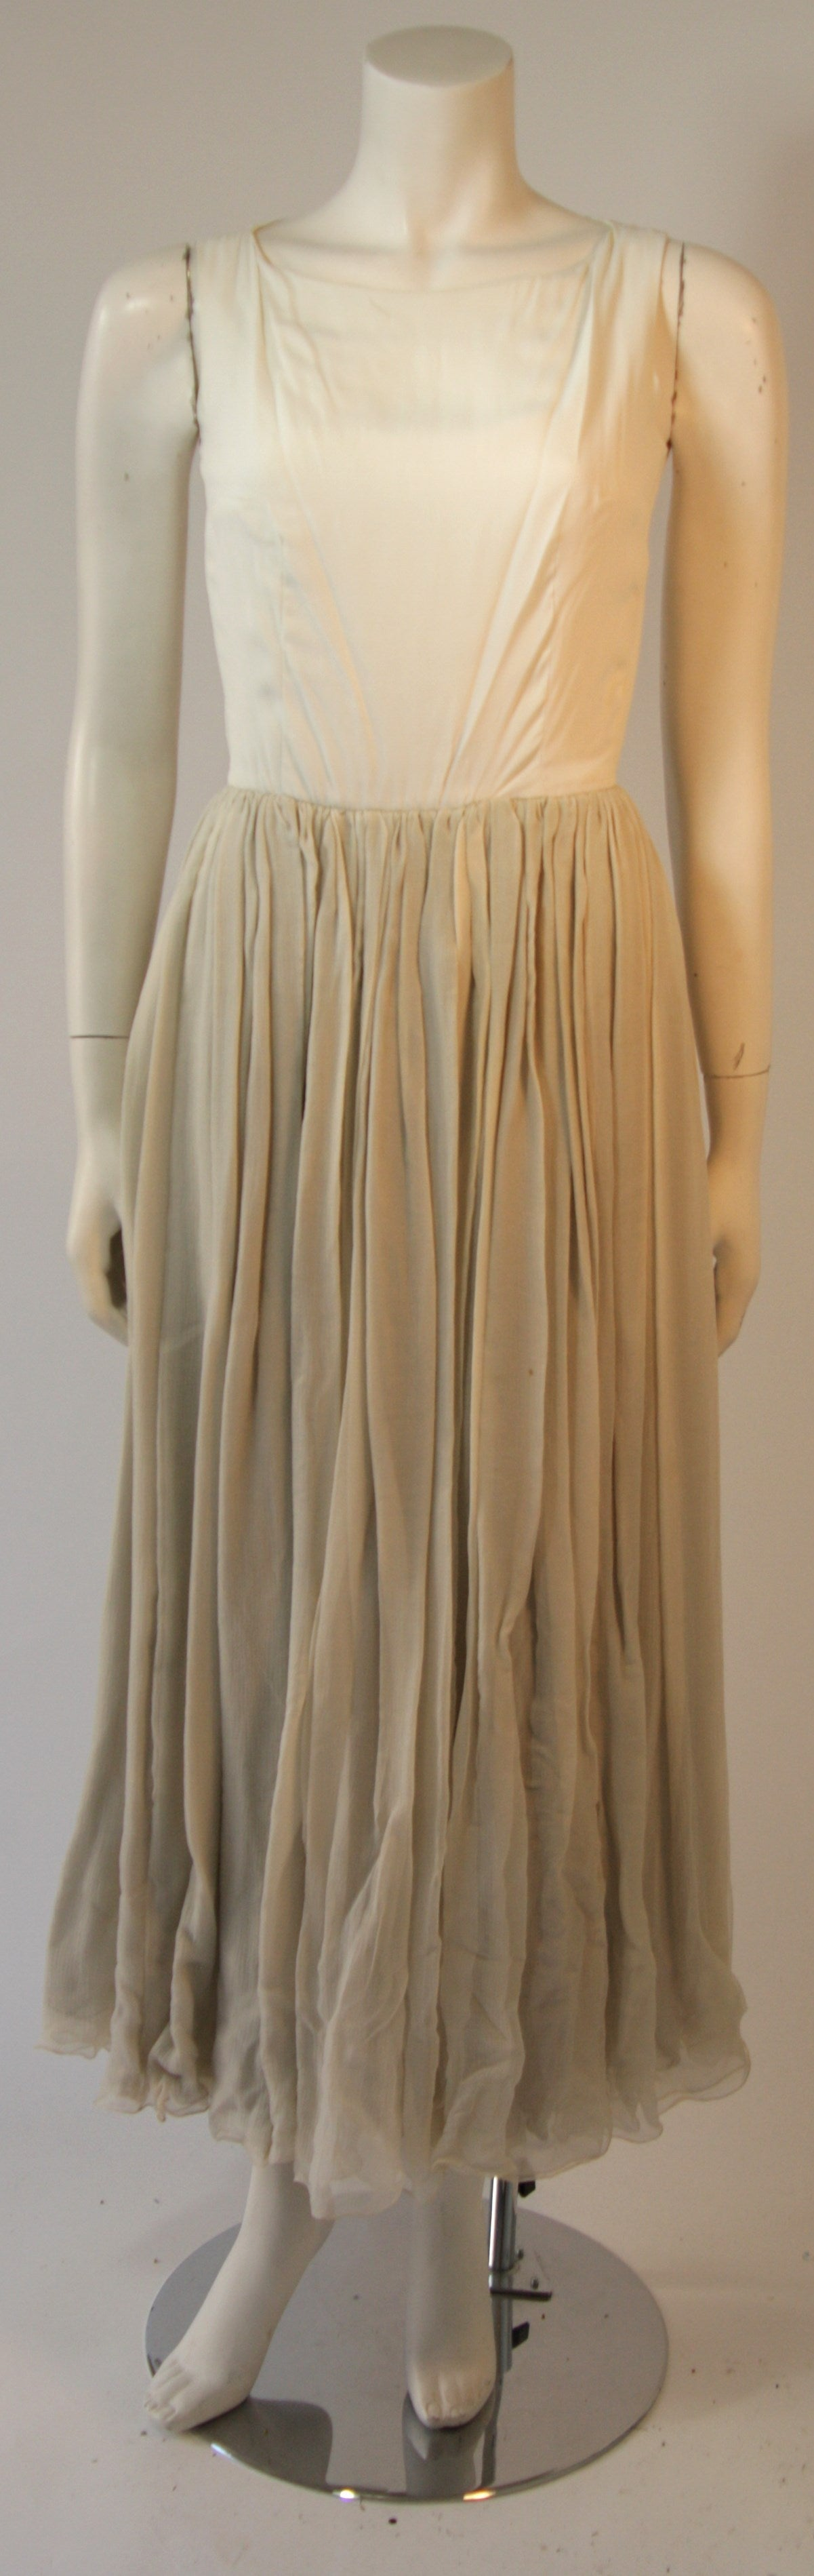 Gold and Chiffon Embellished 2 Piece Gown For Sale 3